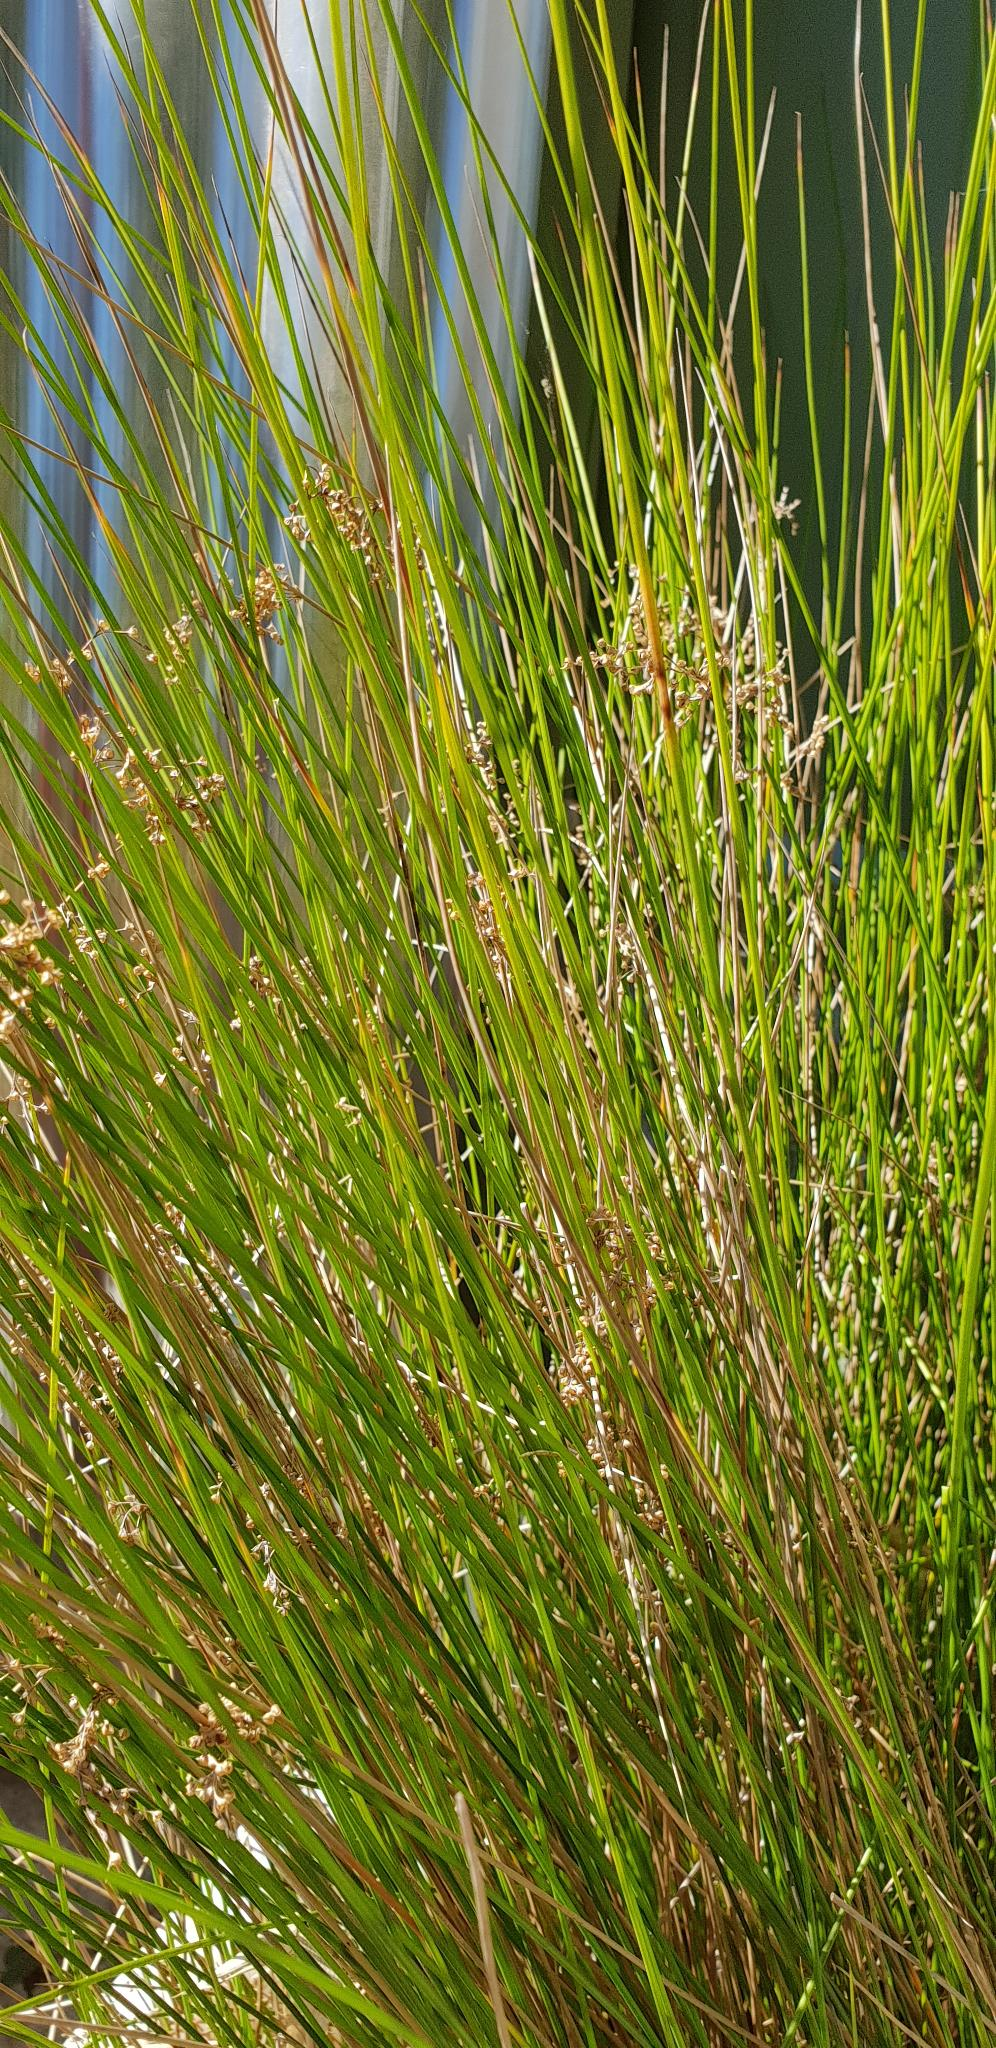 Common Rush - Juncus usitatus